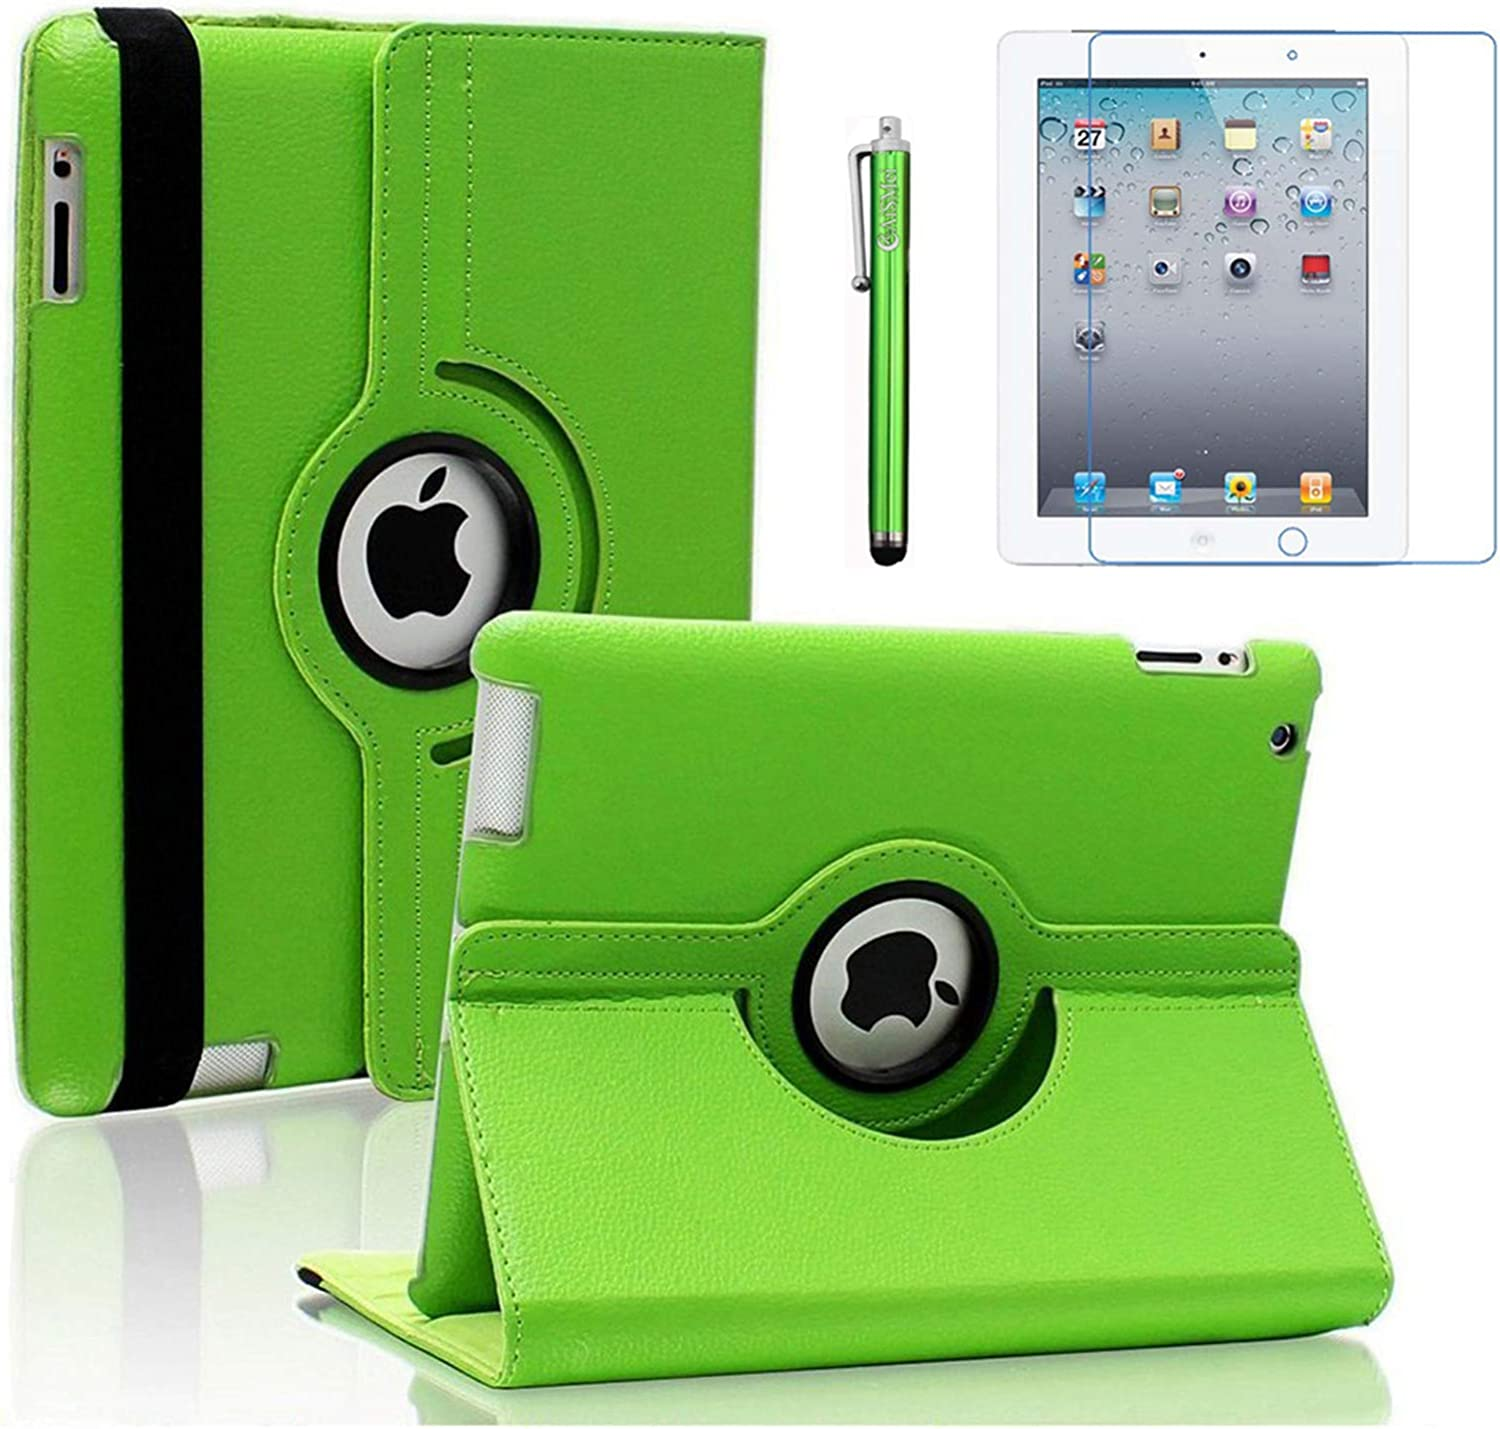 AiSMei Case for iPad 4 (2012), Rotating Stand Case Cover for 9.7'' Apple iPad A1395, A1396, A1397, A1403, A1416, A1430, A1458, A1459, A1460, Bonus Stylus + Film, Green